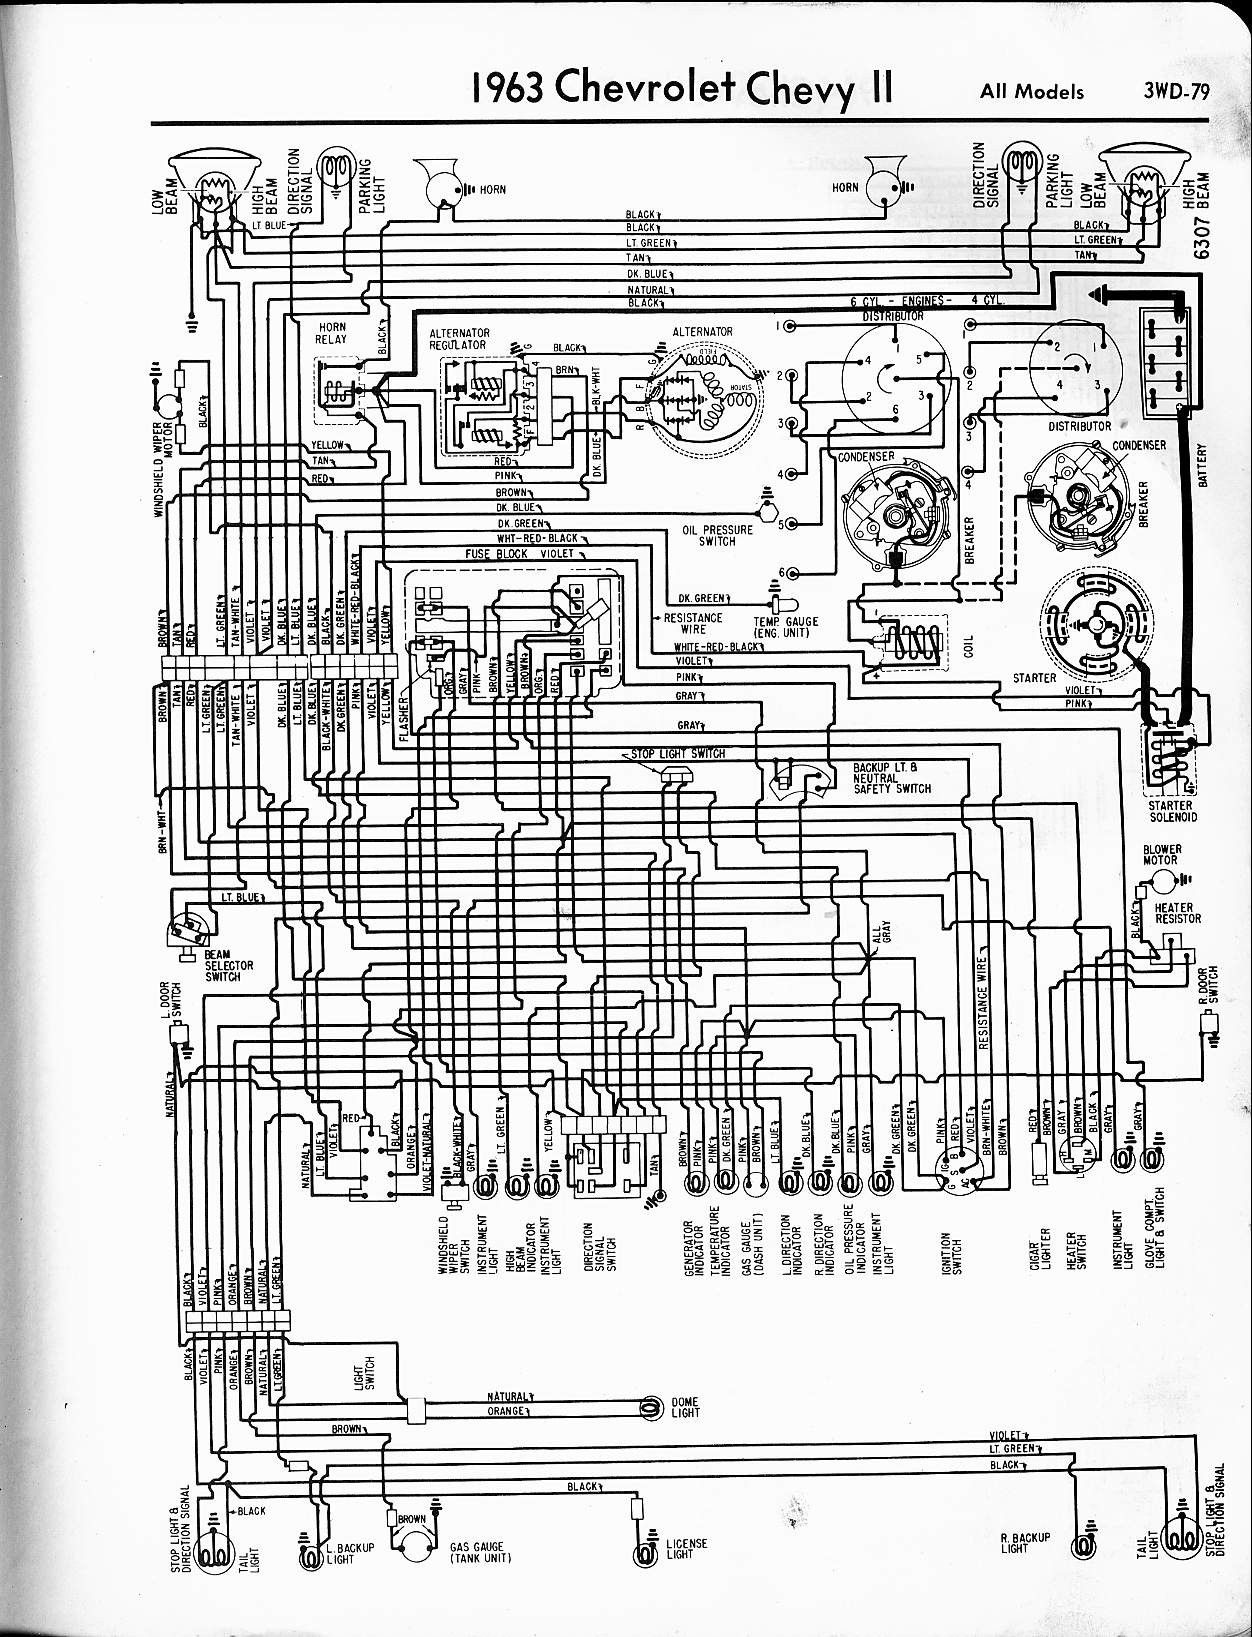 Best Of 1970 Chevelle Wiring Diagram In 2020